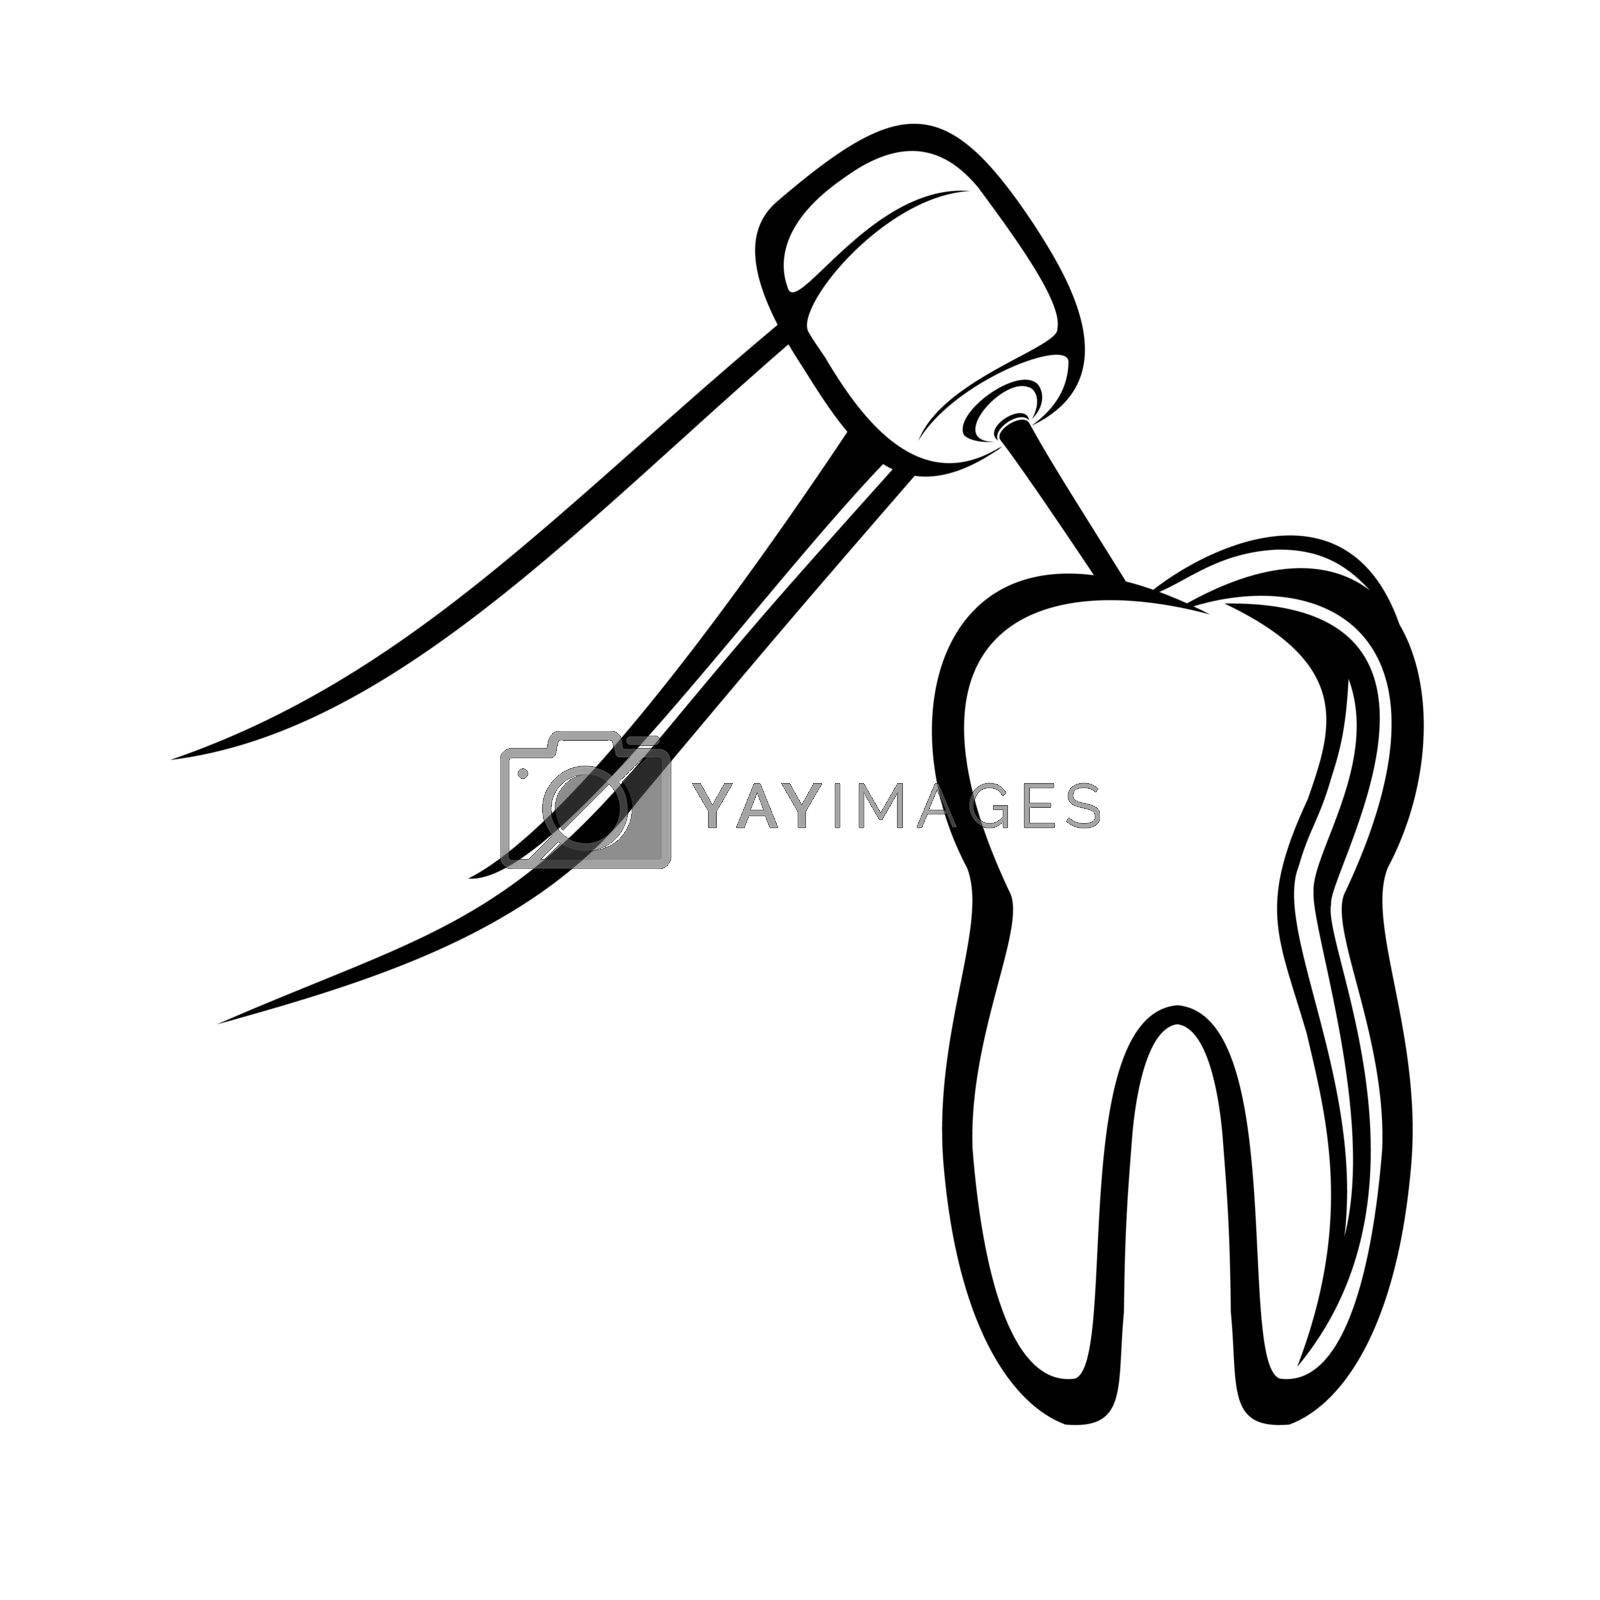 Vector illustration : Dentist drill on a white background.